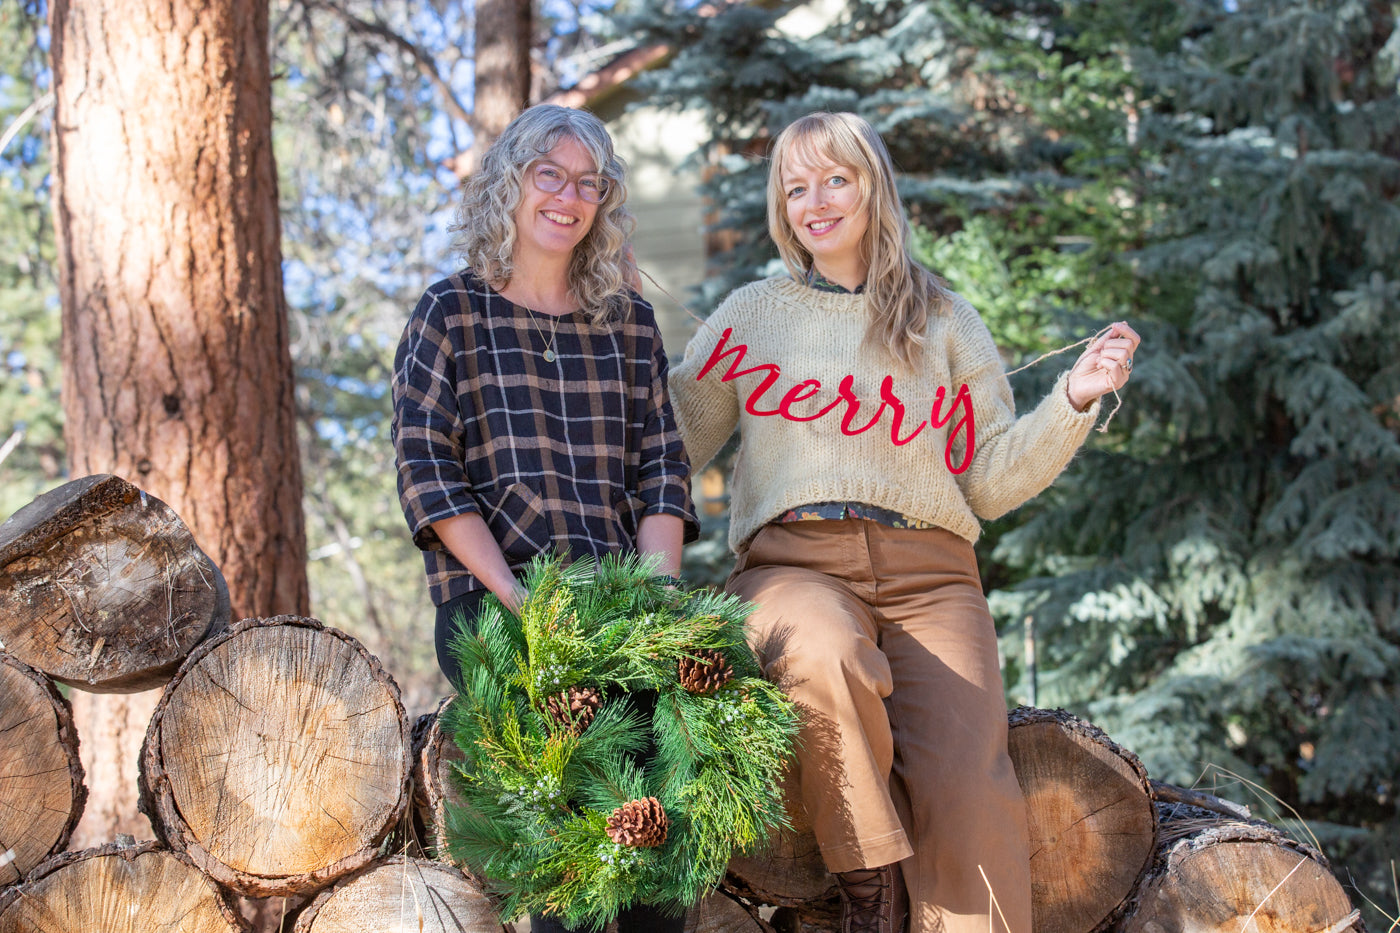 Jaime and Amber sitting on a wood pile, smiling.  Jaime is holding a Christmas wreath and Amber is holding a red felt sign that says Merry.  The background is Colorado pine trees.